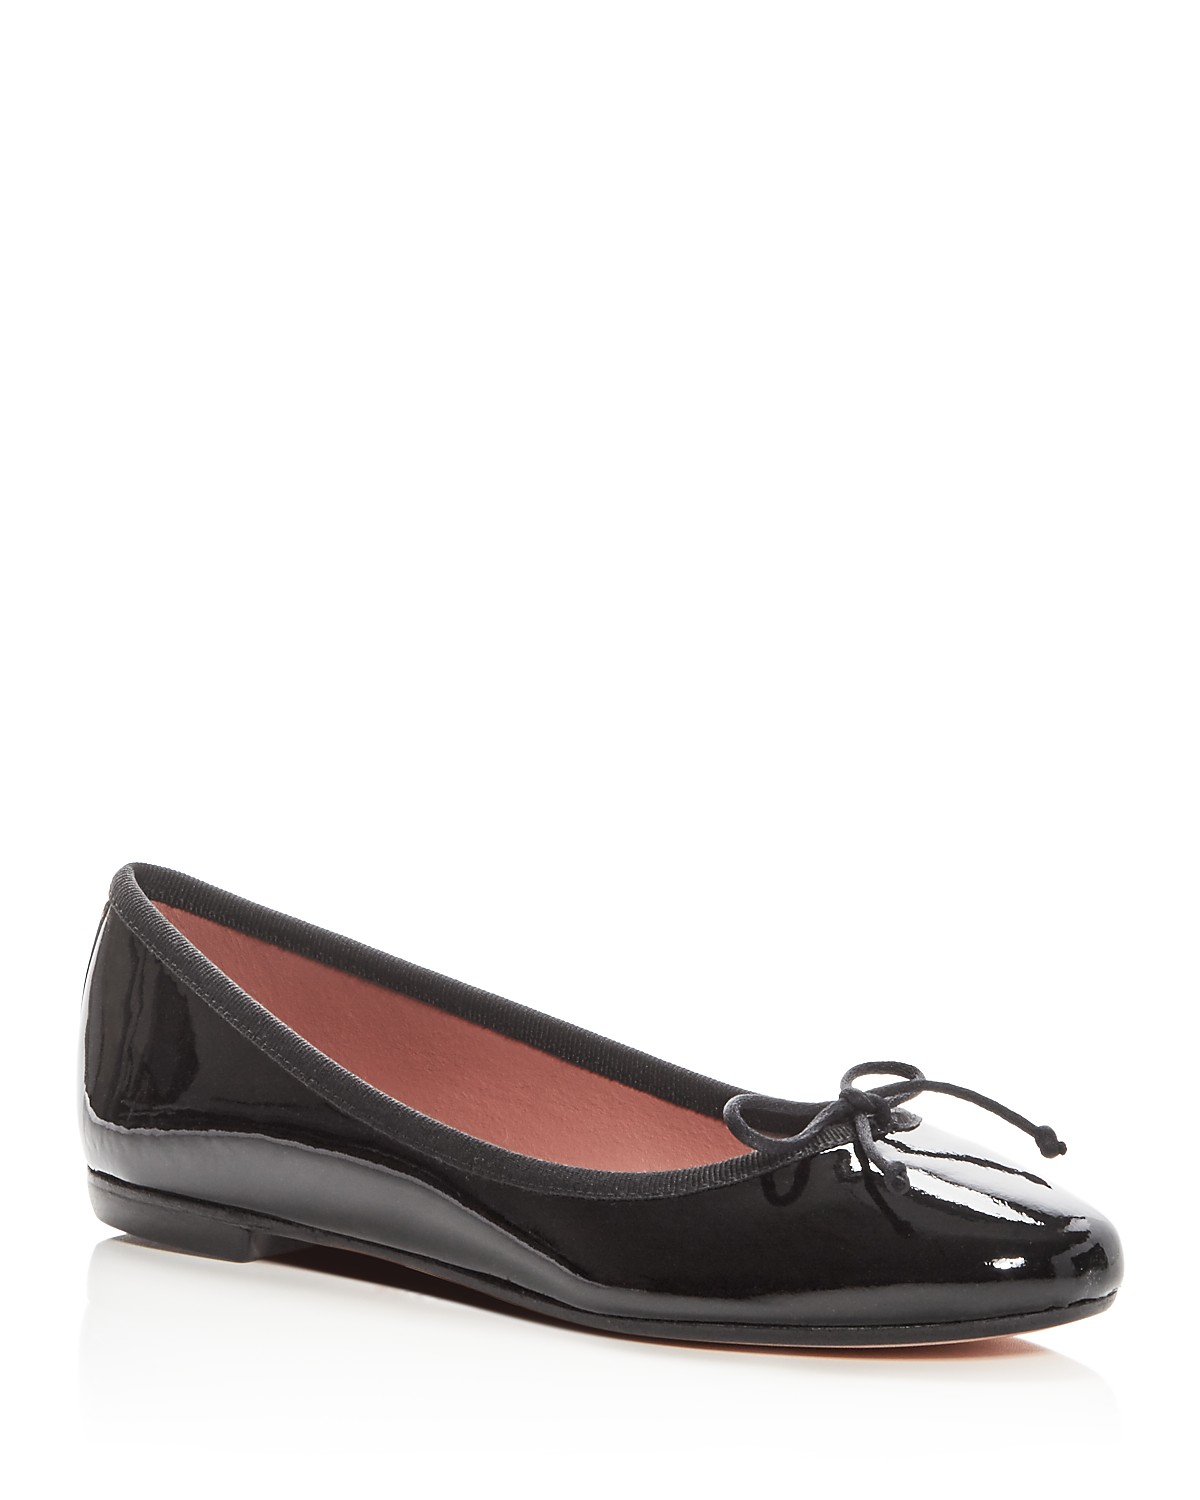 Bloomingdale's Women's Kacey Italian Patent Leather Ballet Flats - 100% Exclusive 4AJY8vMNf